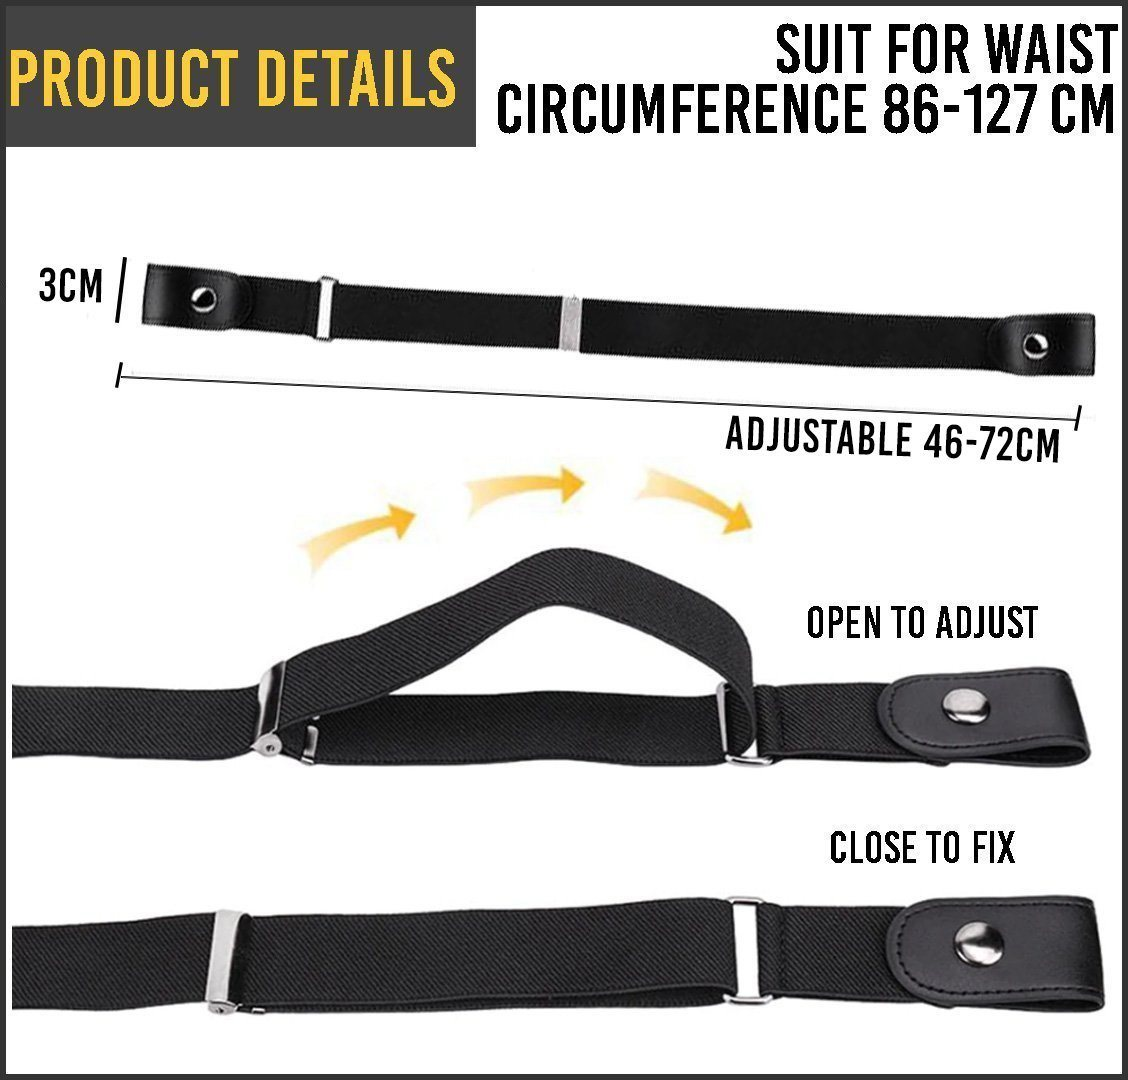 Buckle-Free Adjustable Belt 88mallonline